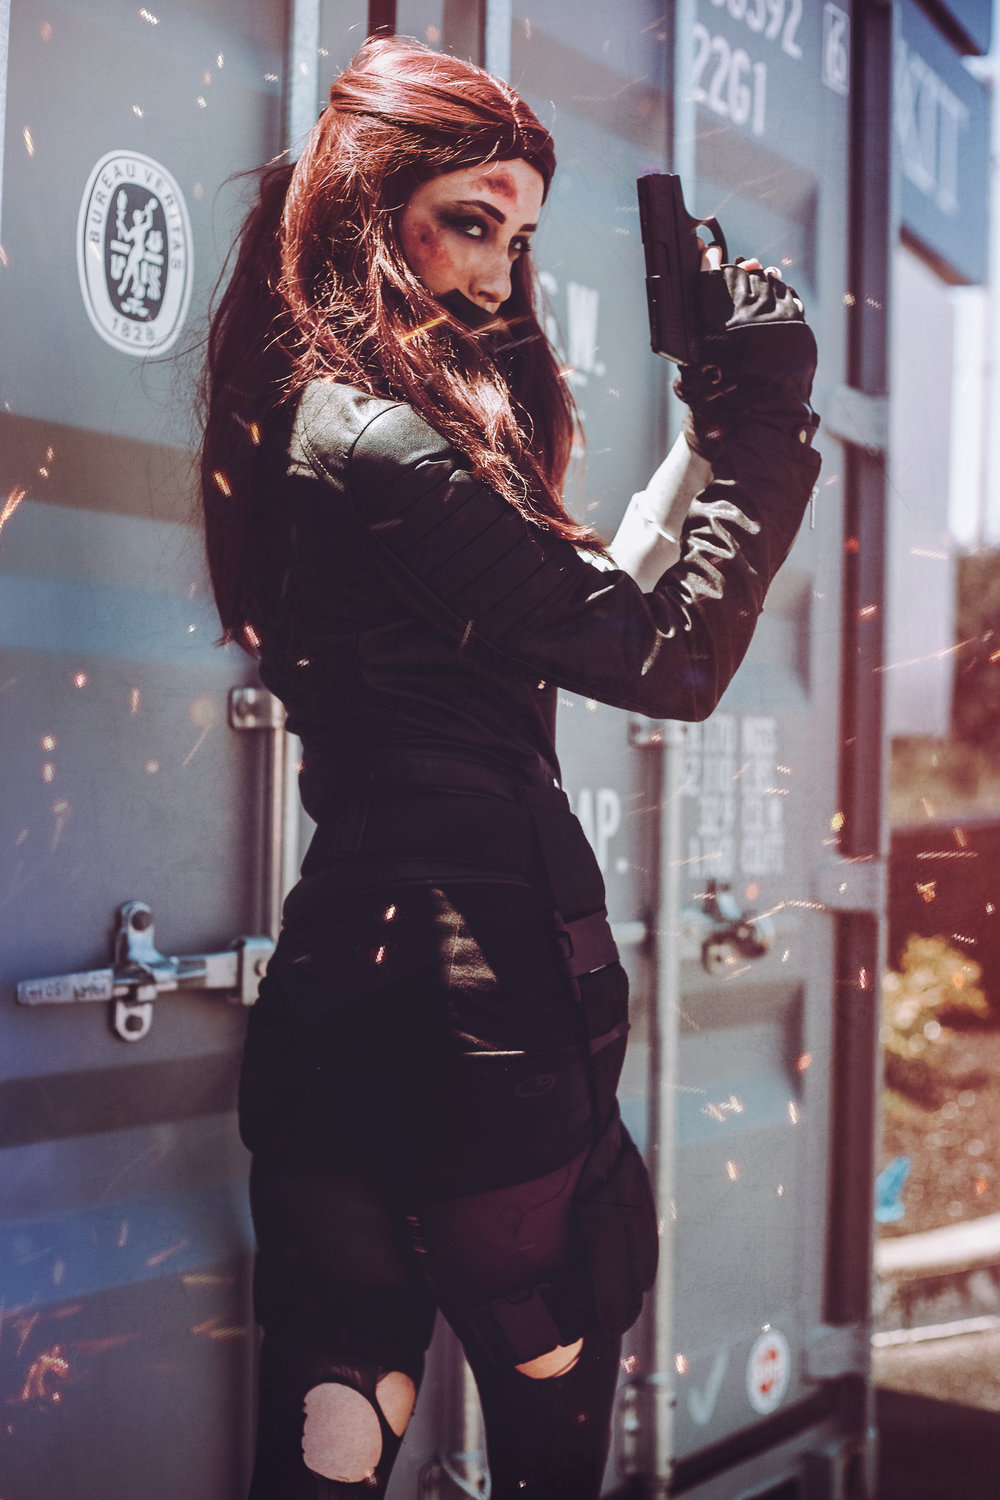 Emily's Bucky Barnes cosplay shot by Aesthel at PortconMaine this year